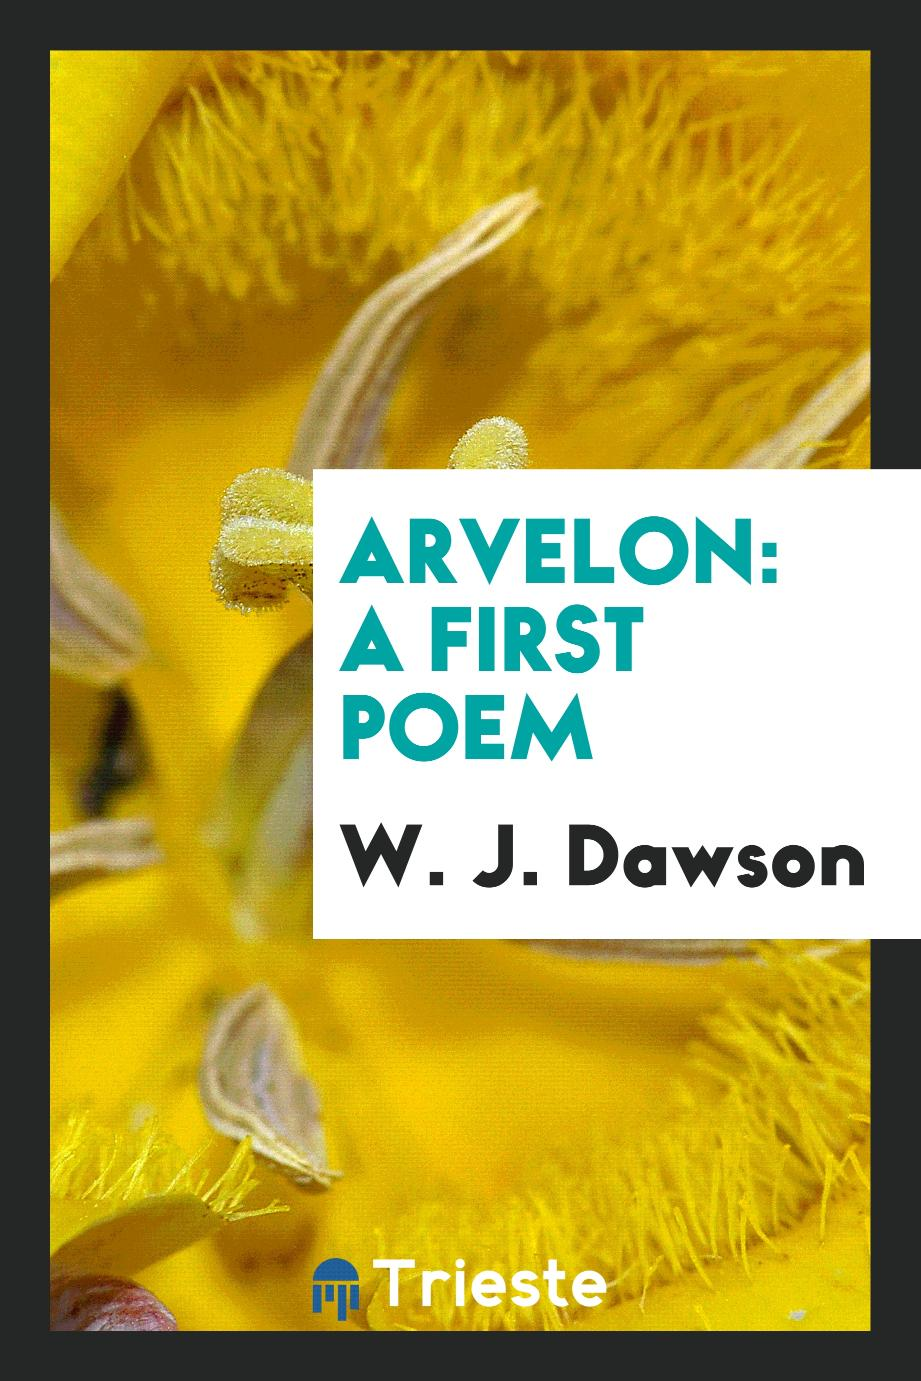 Arvelon: A First Poem